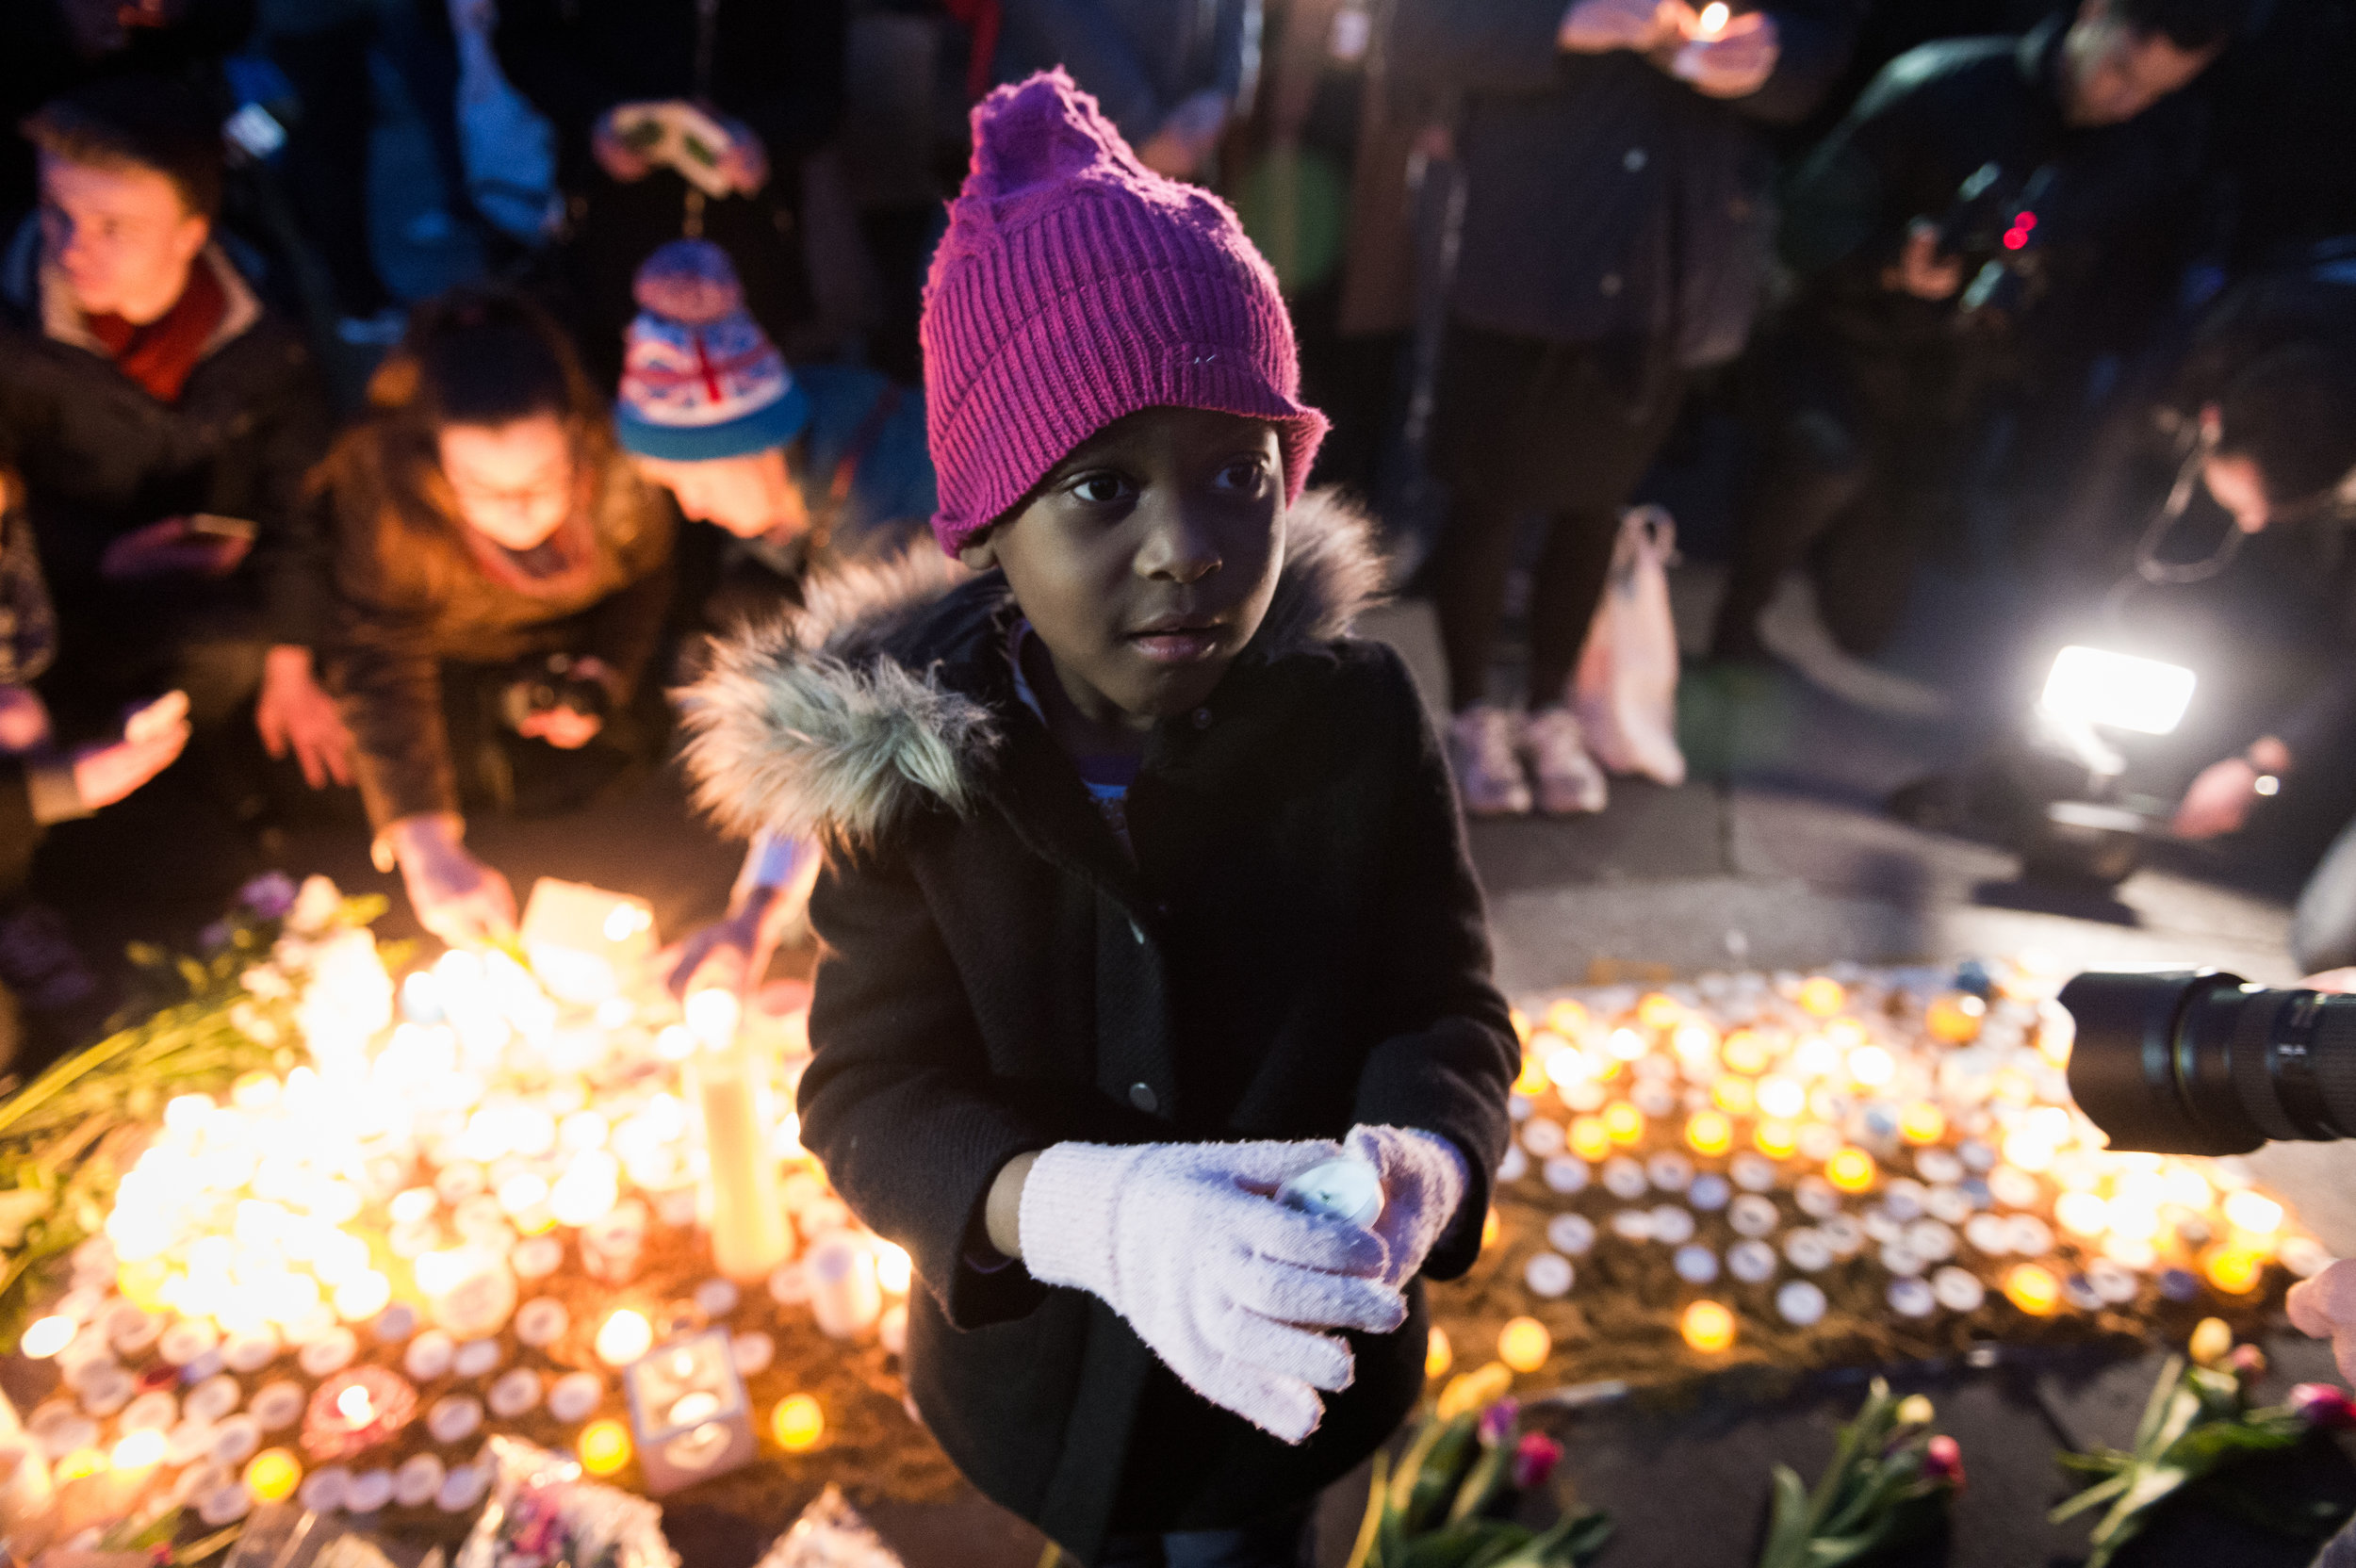 A young girl beckons her father to help light a candle in memory of those who lost their lives in the terror attack.